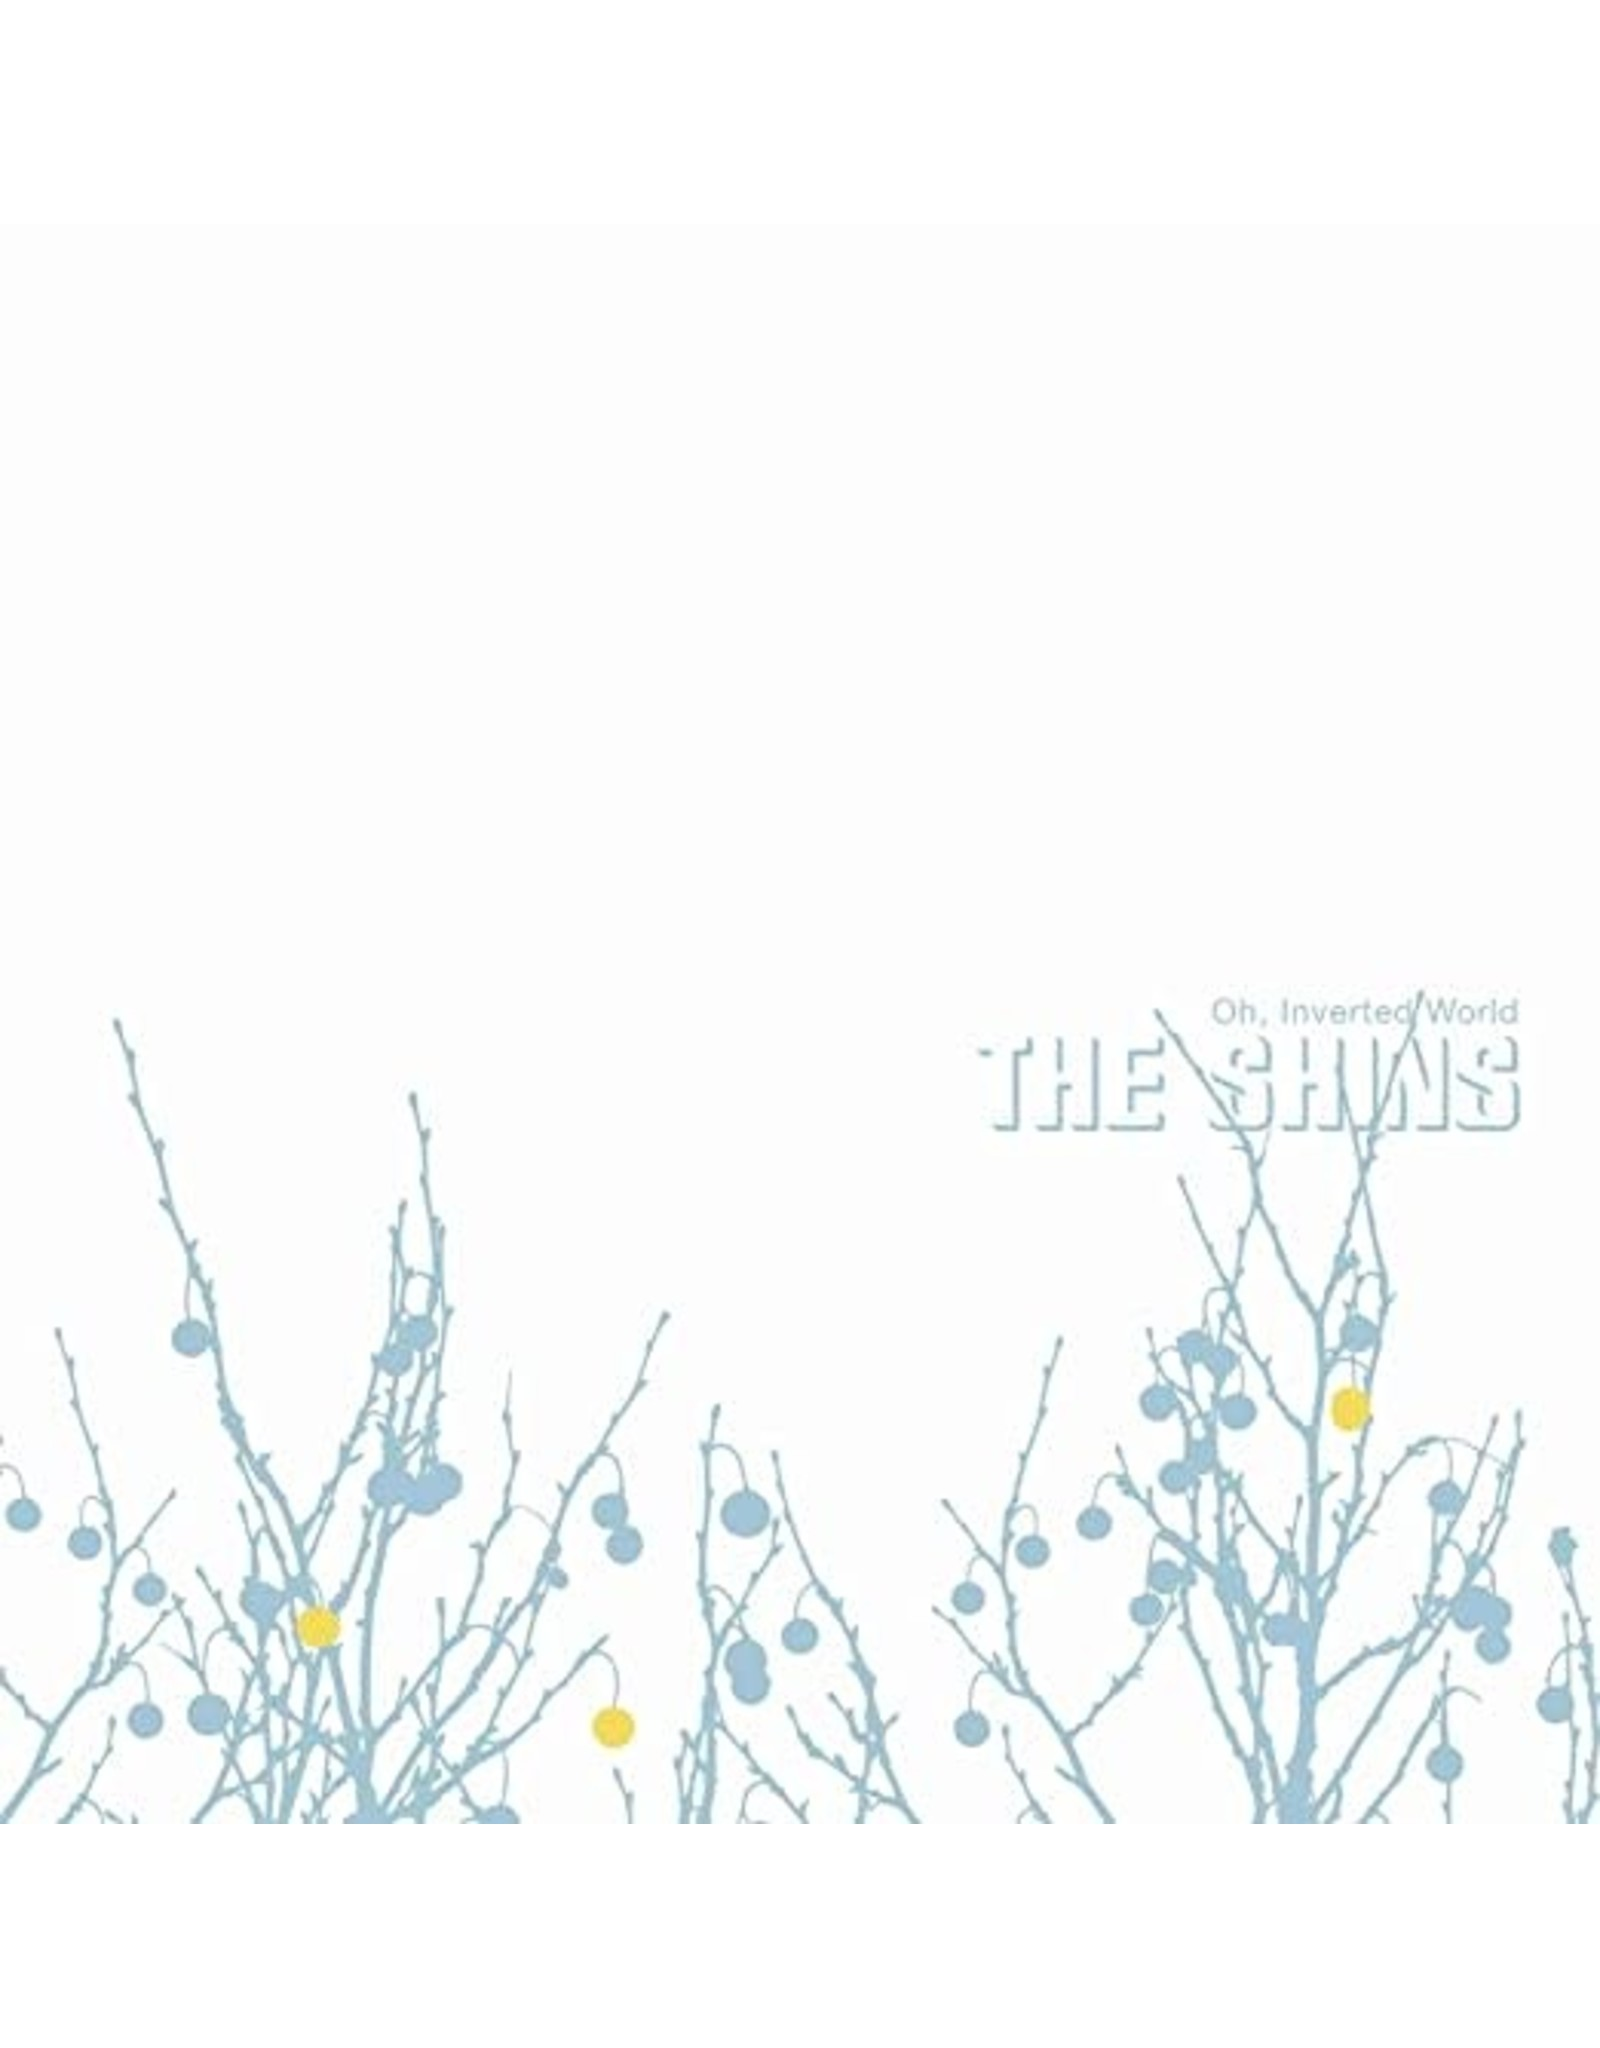 New Vinyl The Shins - Oh Inverted World (20th Anniversary) LP